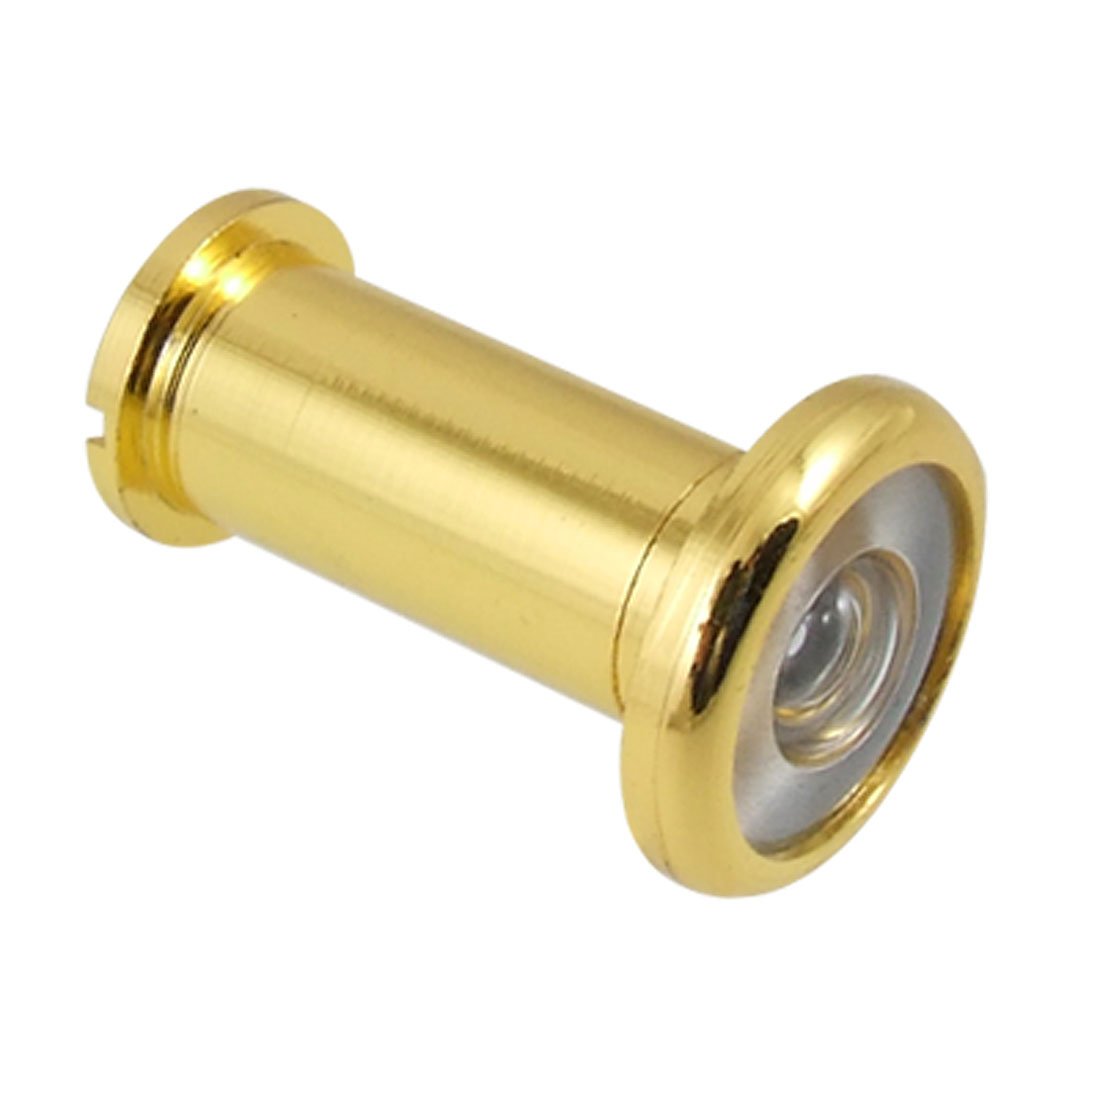 Home Safety 180 Degree Door Viewer Peephole Gold Tone